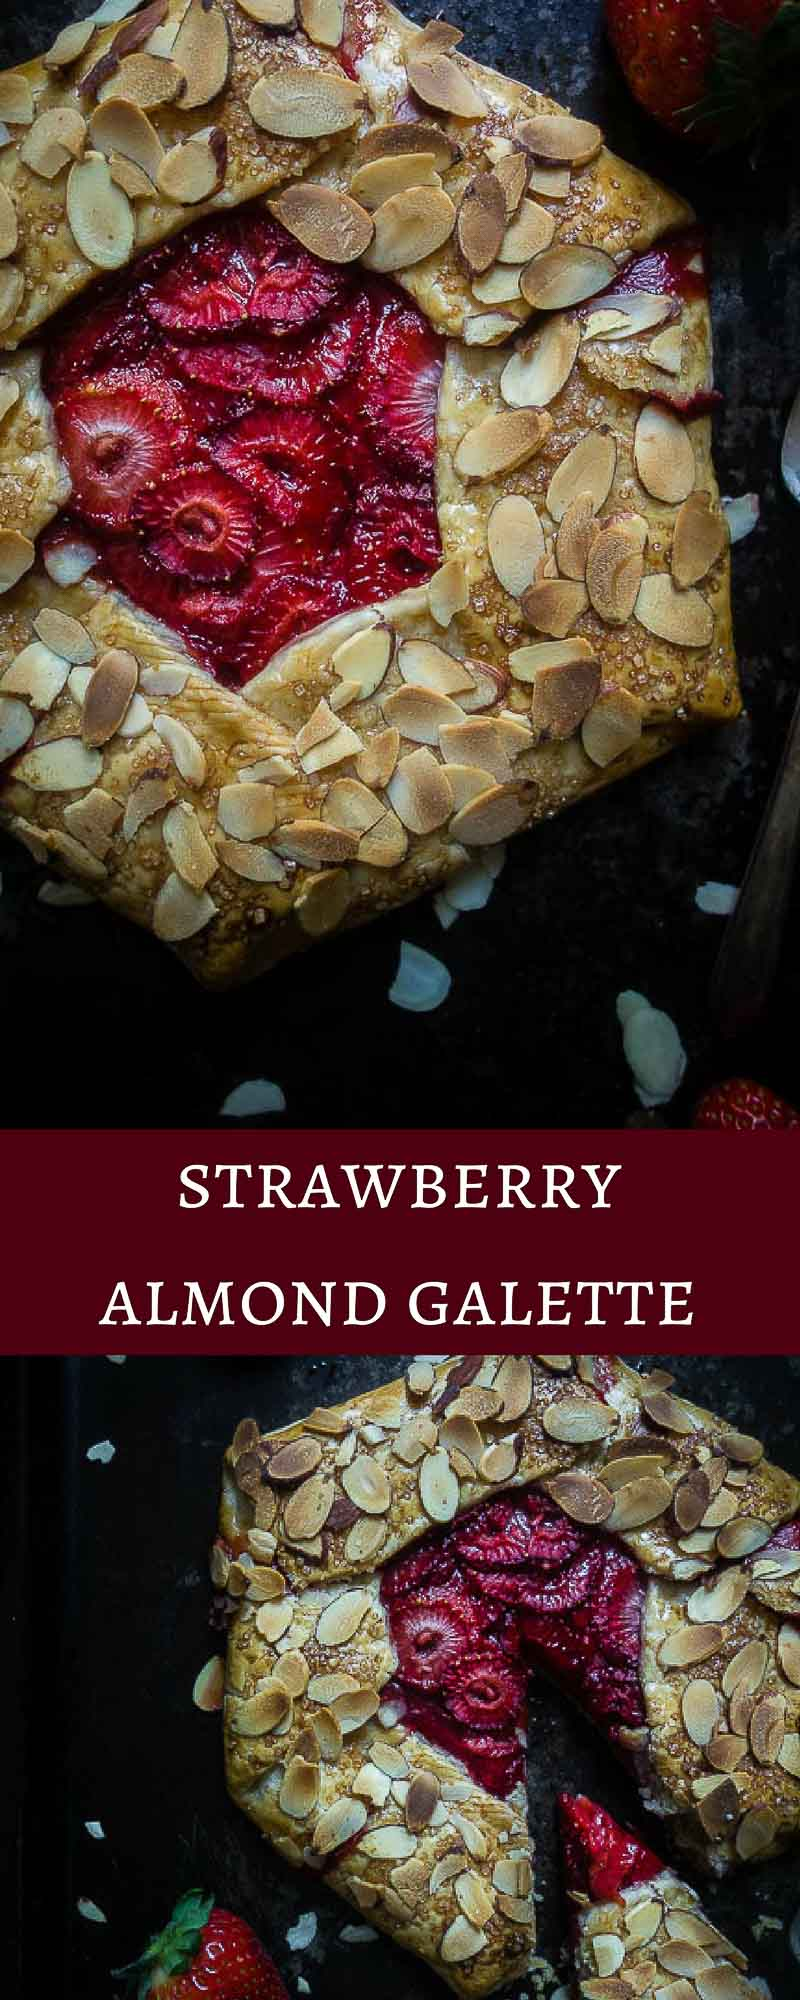 This Strawberry Almond Galette is super easy, taking only 5 minutes to put together and made with fresh strawberries & almonds - sure to be a crowd pleaser! I absolutely love this dessert!rustic galette | strawberry desserts | fresh strawberry galette | simple desserts | rustic french pie | french desserts | strawberry pie | honey strawberry galette | almond galette | healthy strawberry galette | strawberry tart | easy homemade pie